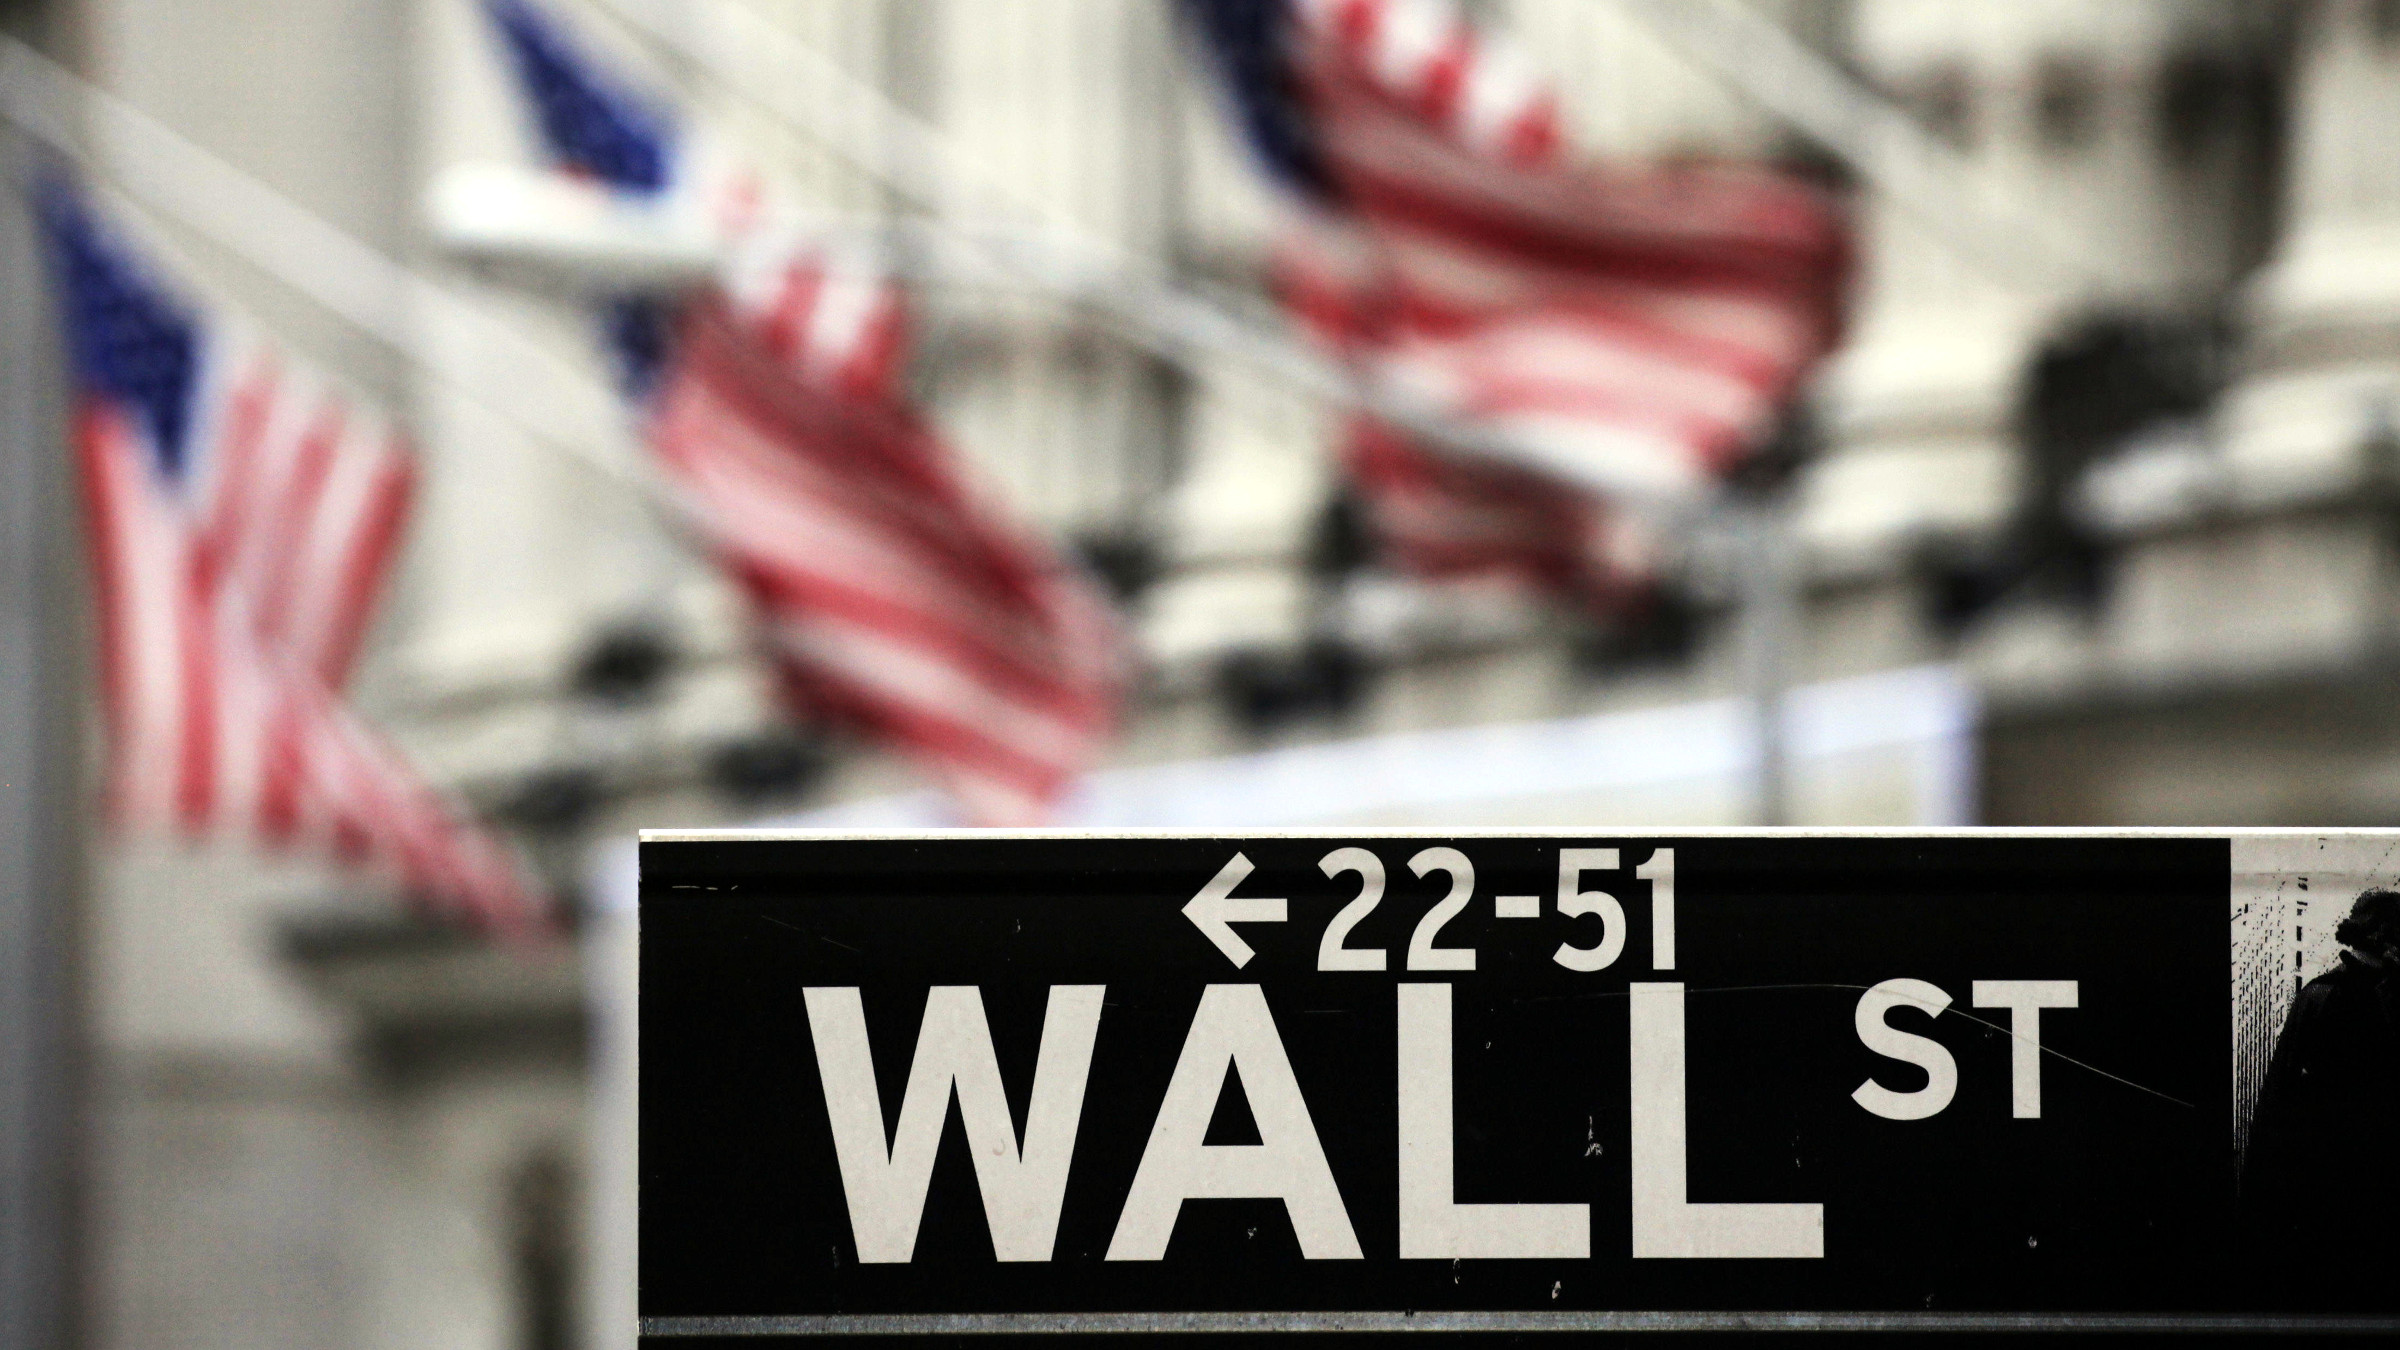 A Wall Street sign is shown in front of the New York Stock Exchange, Thursday, April 22, 2010. President Barack Obama gives a speech later in the day in New York regarding regulation of the financial community.